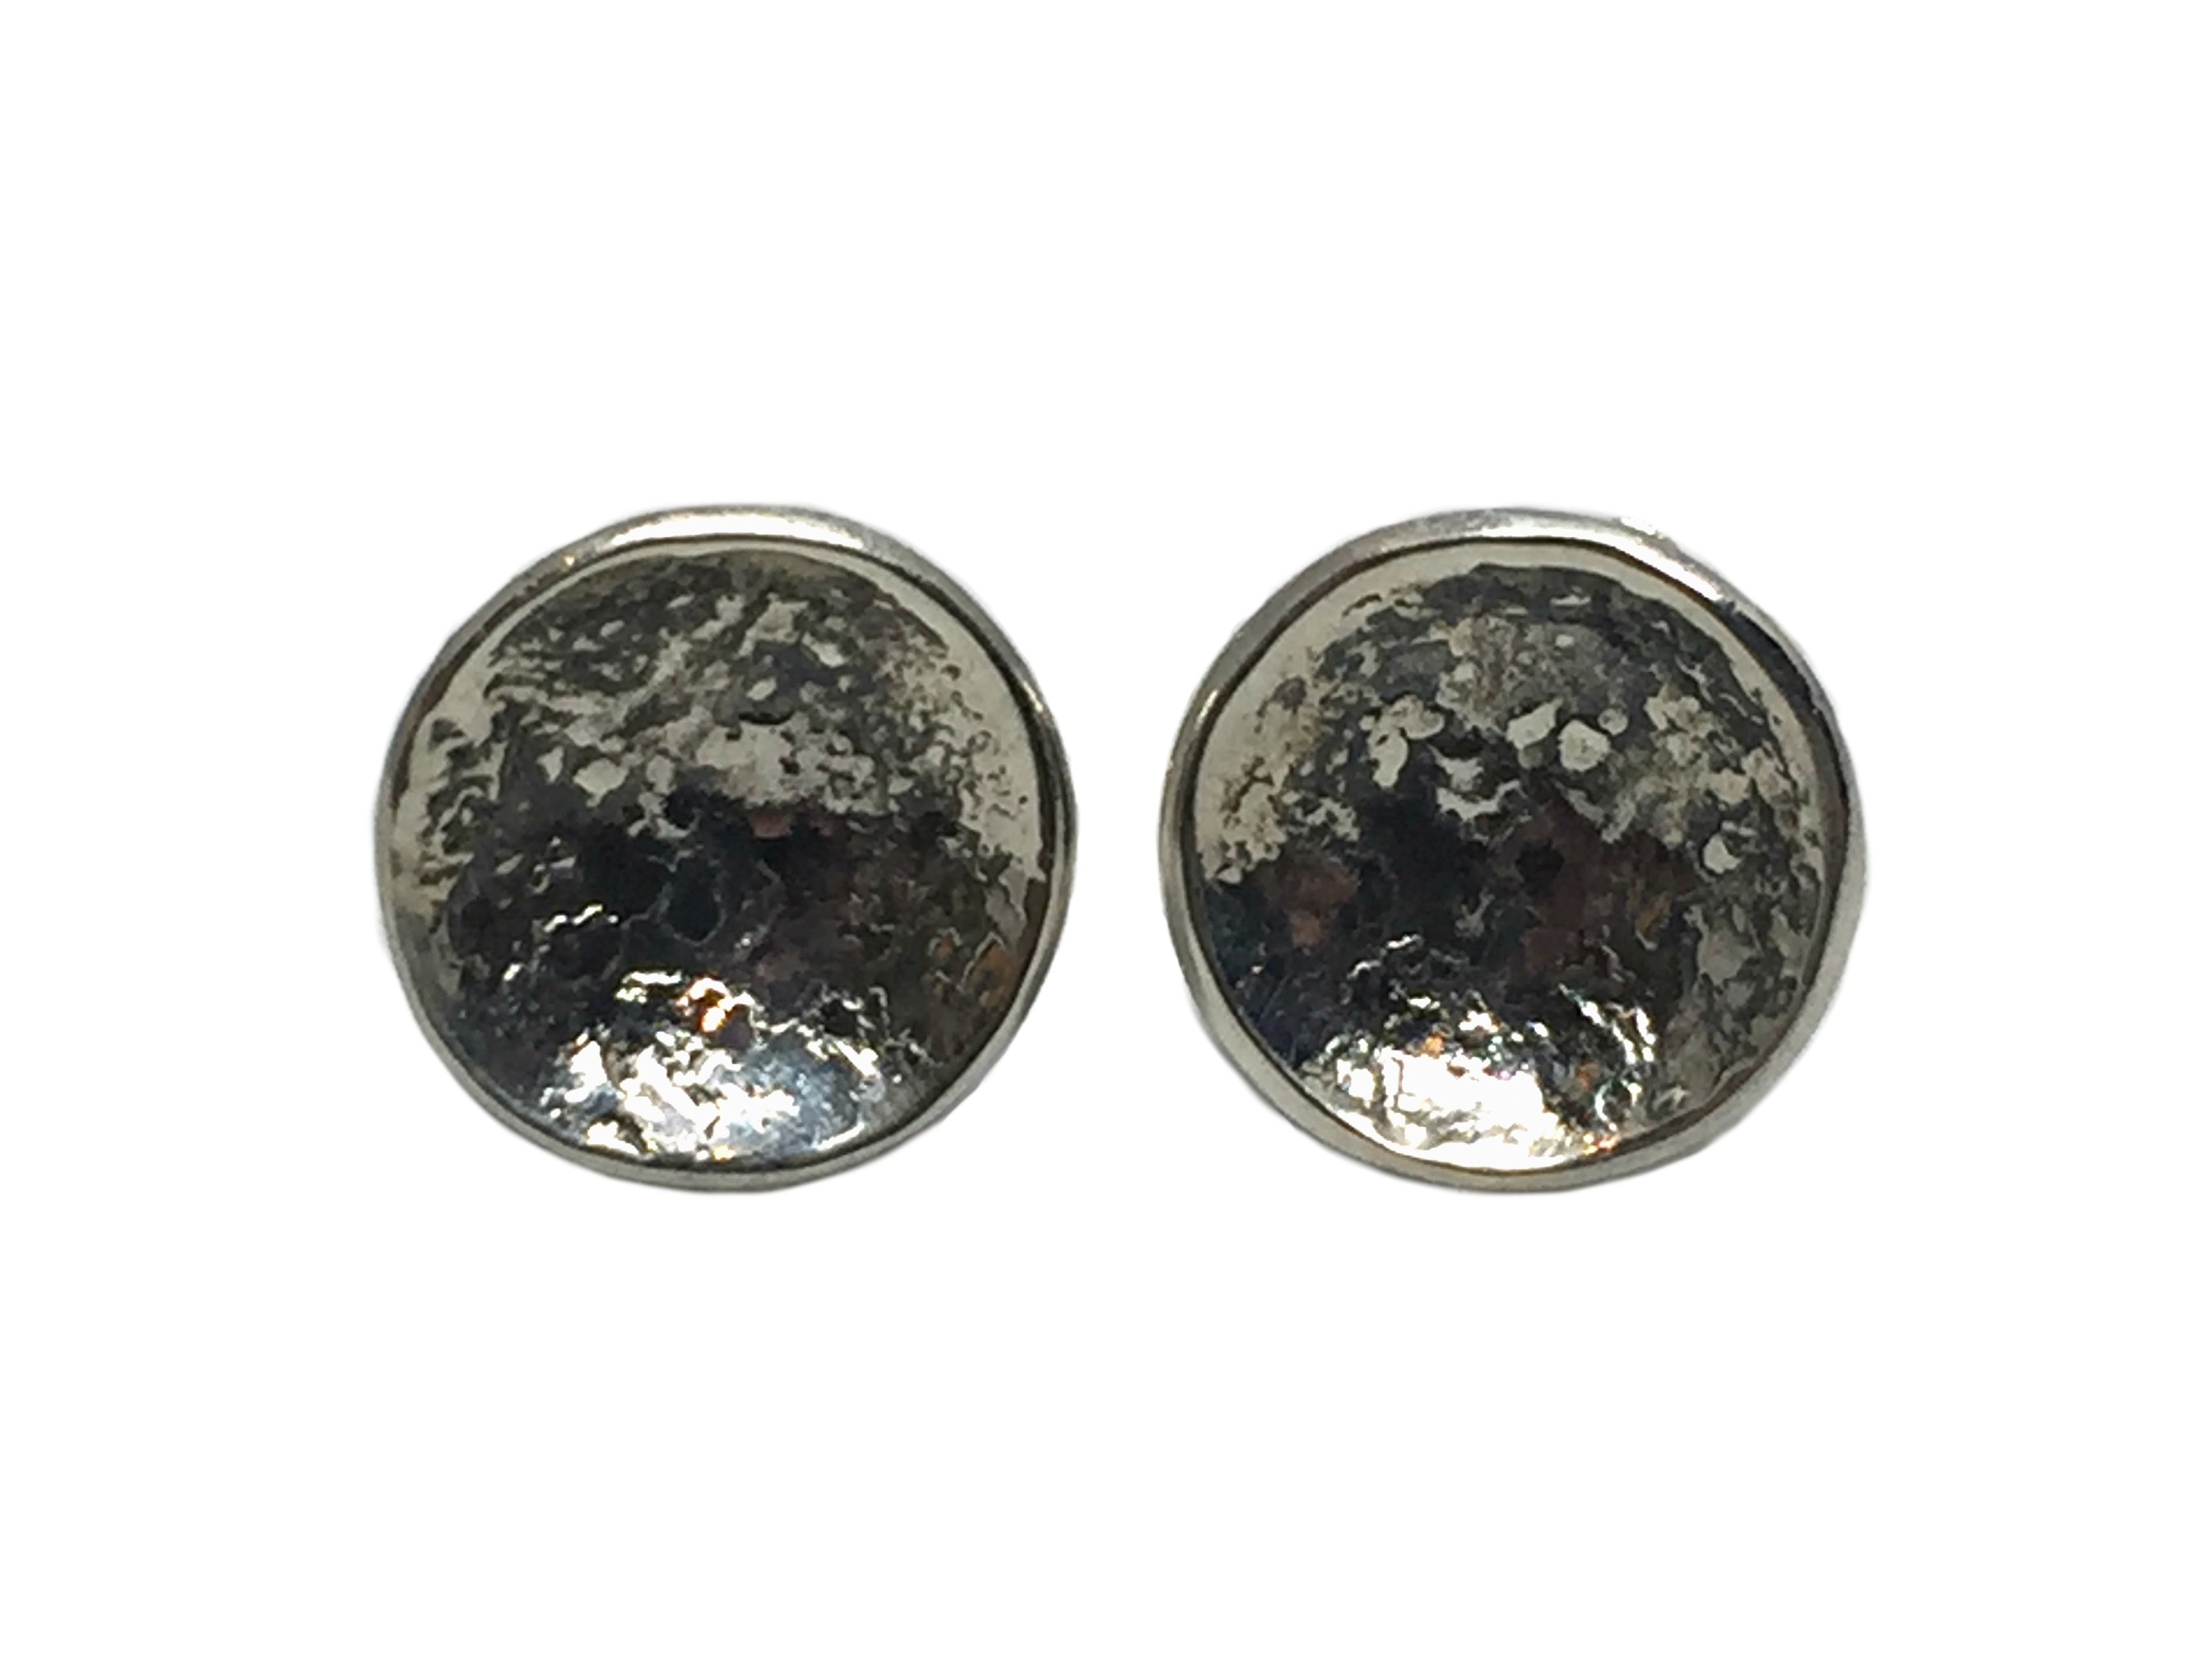 Sterling Silver Stud Earrings by Karyn Chopik | Effusion Art Gallery + Cast Glass Studio, Invermere BC